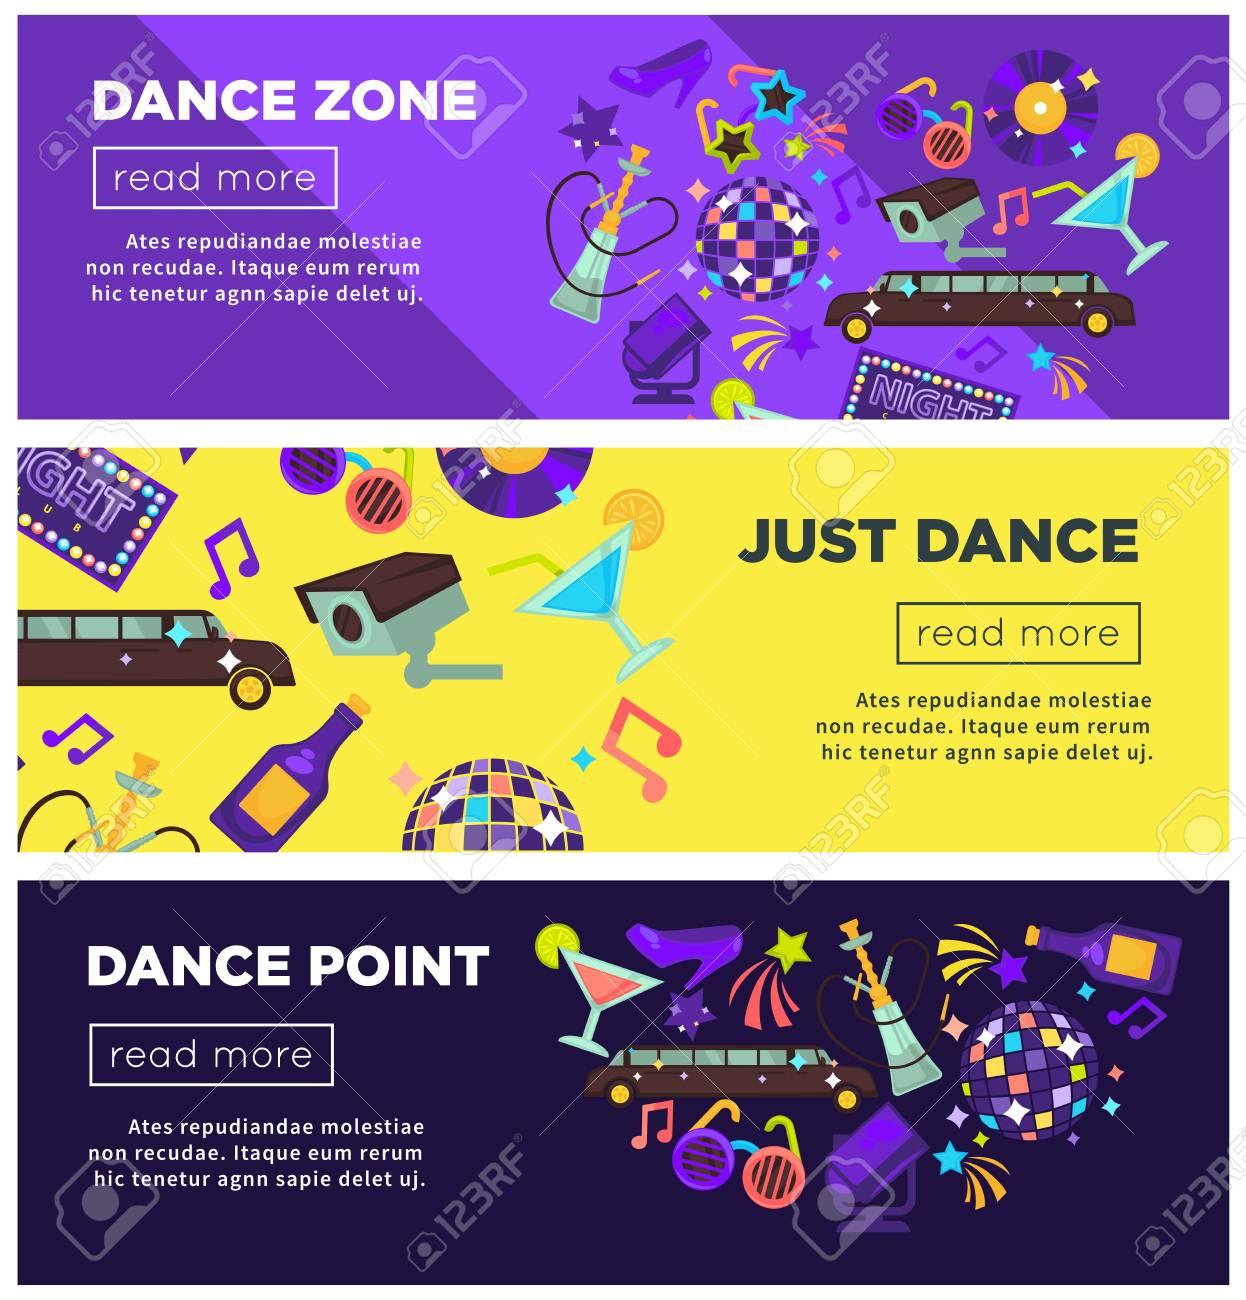 Dance Zone Promotional Bright Internet Posters Templates Set ...